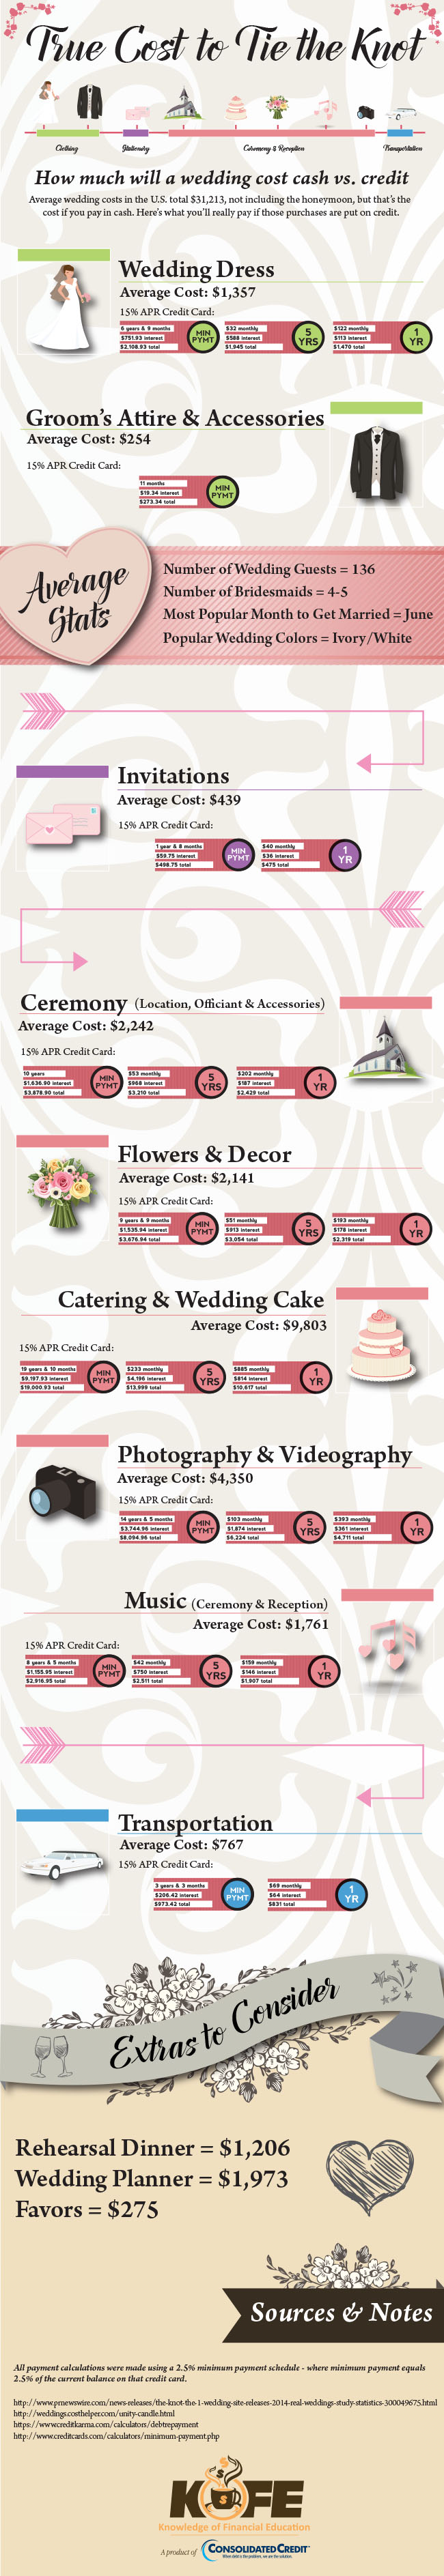 True Cost to Tie the Knot infographic